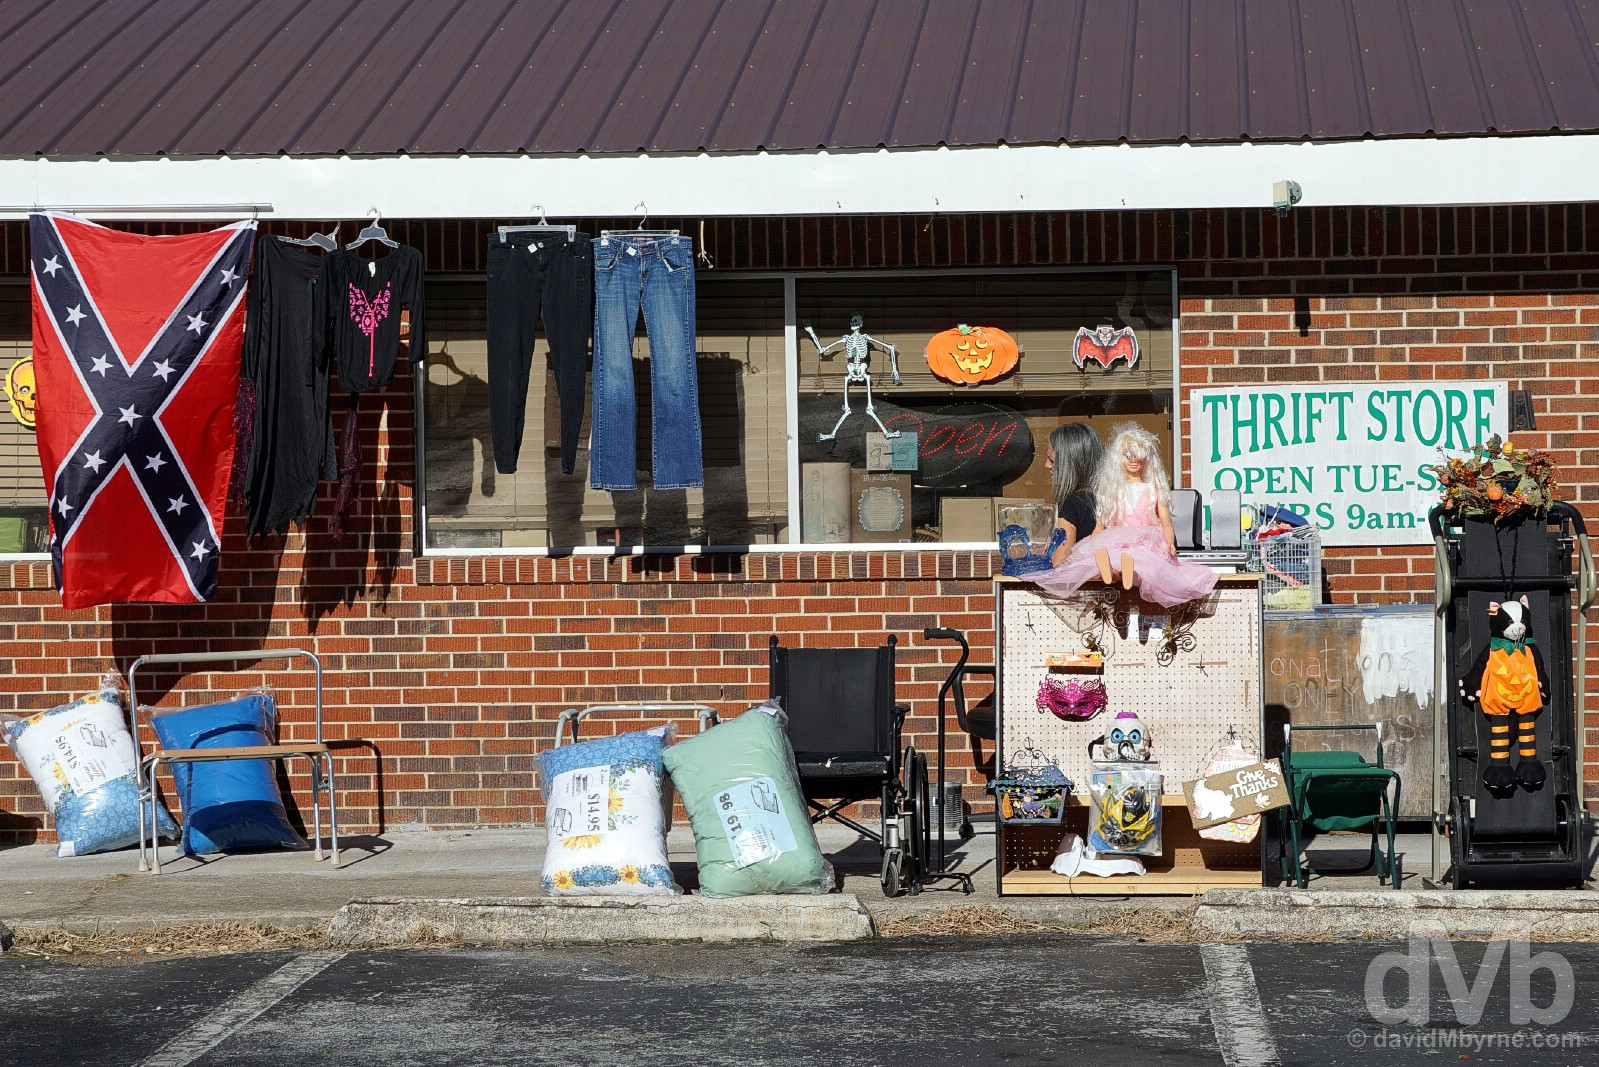 A thrift store in Cornelia, Georgia, USA. September 22, 2016.